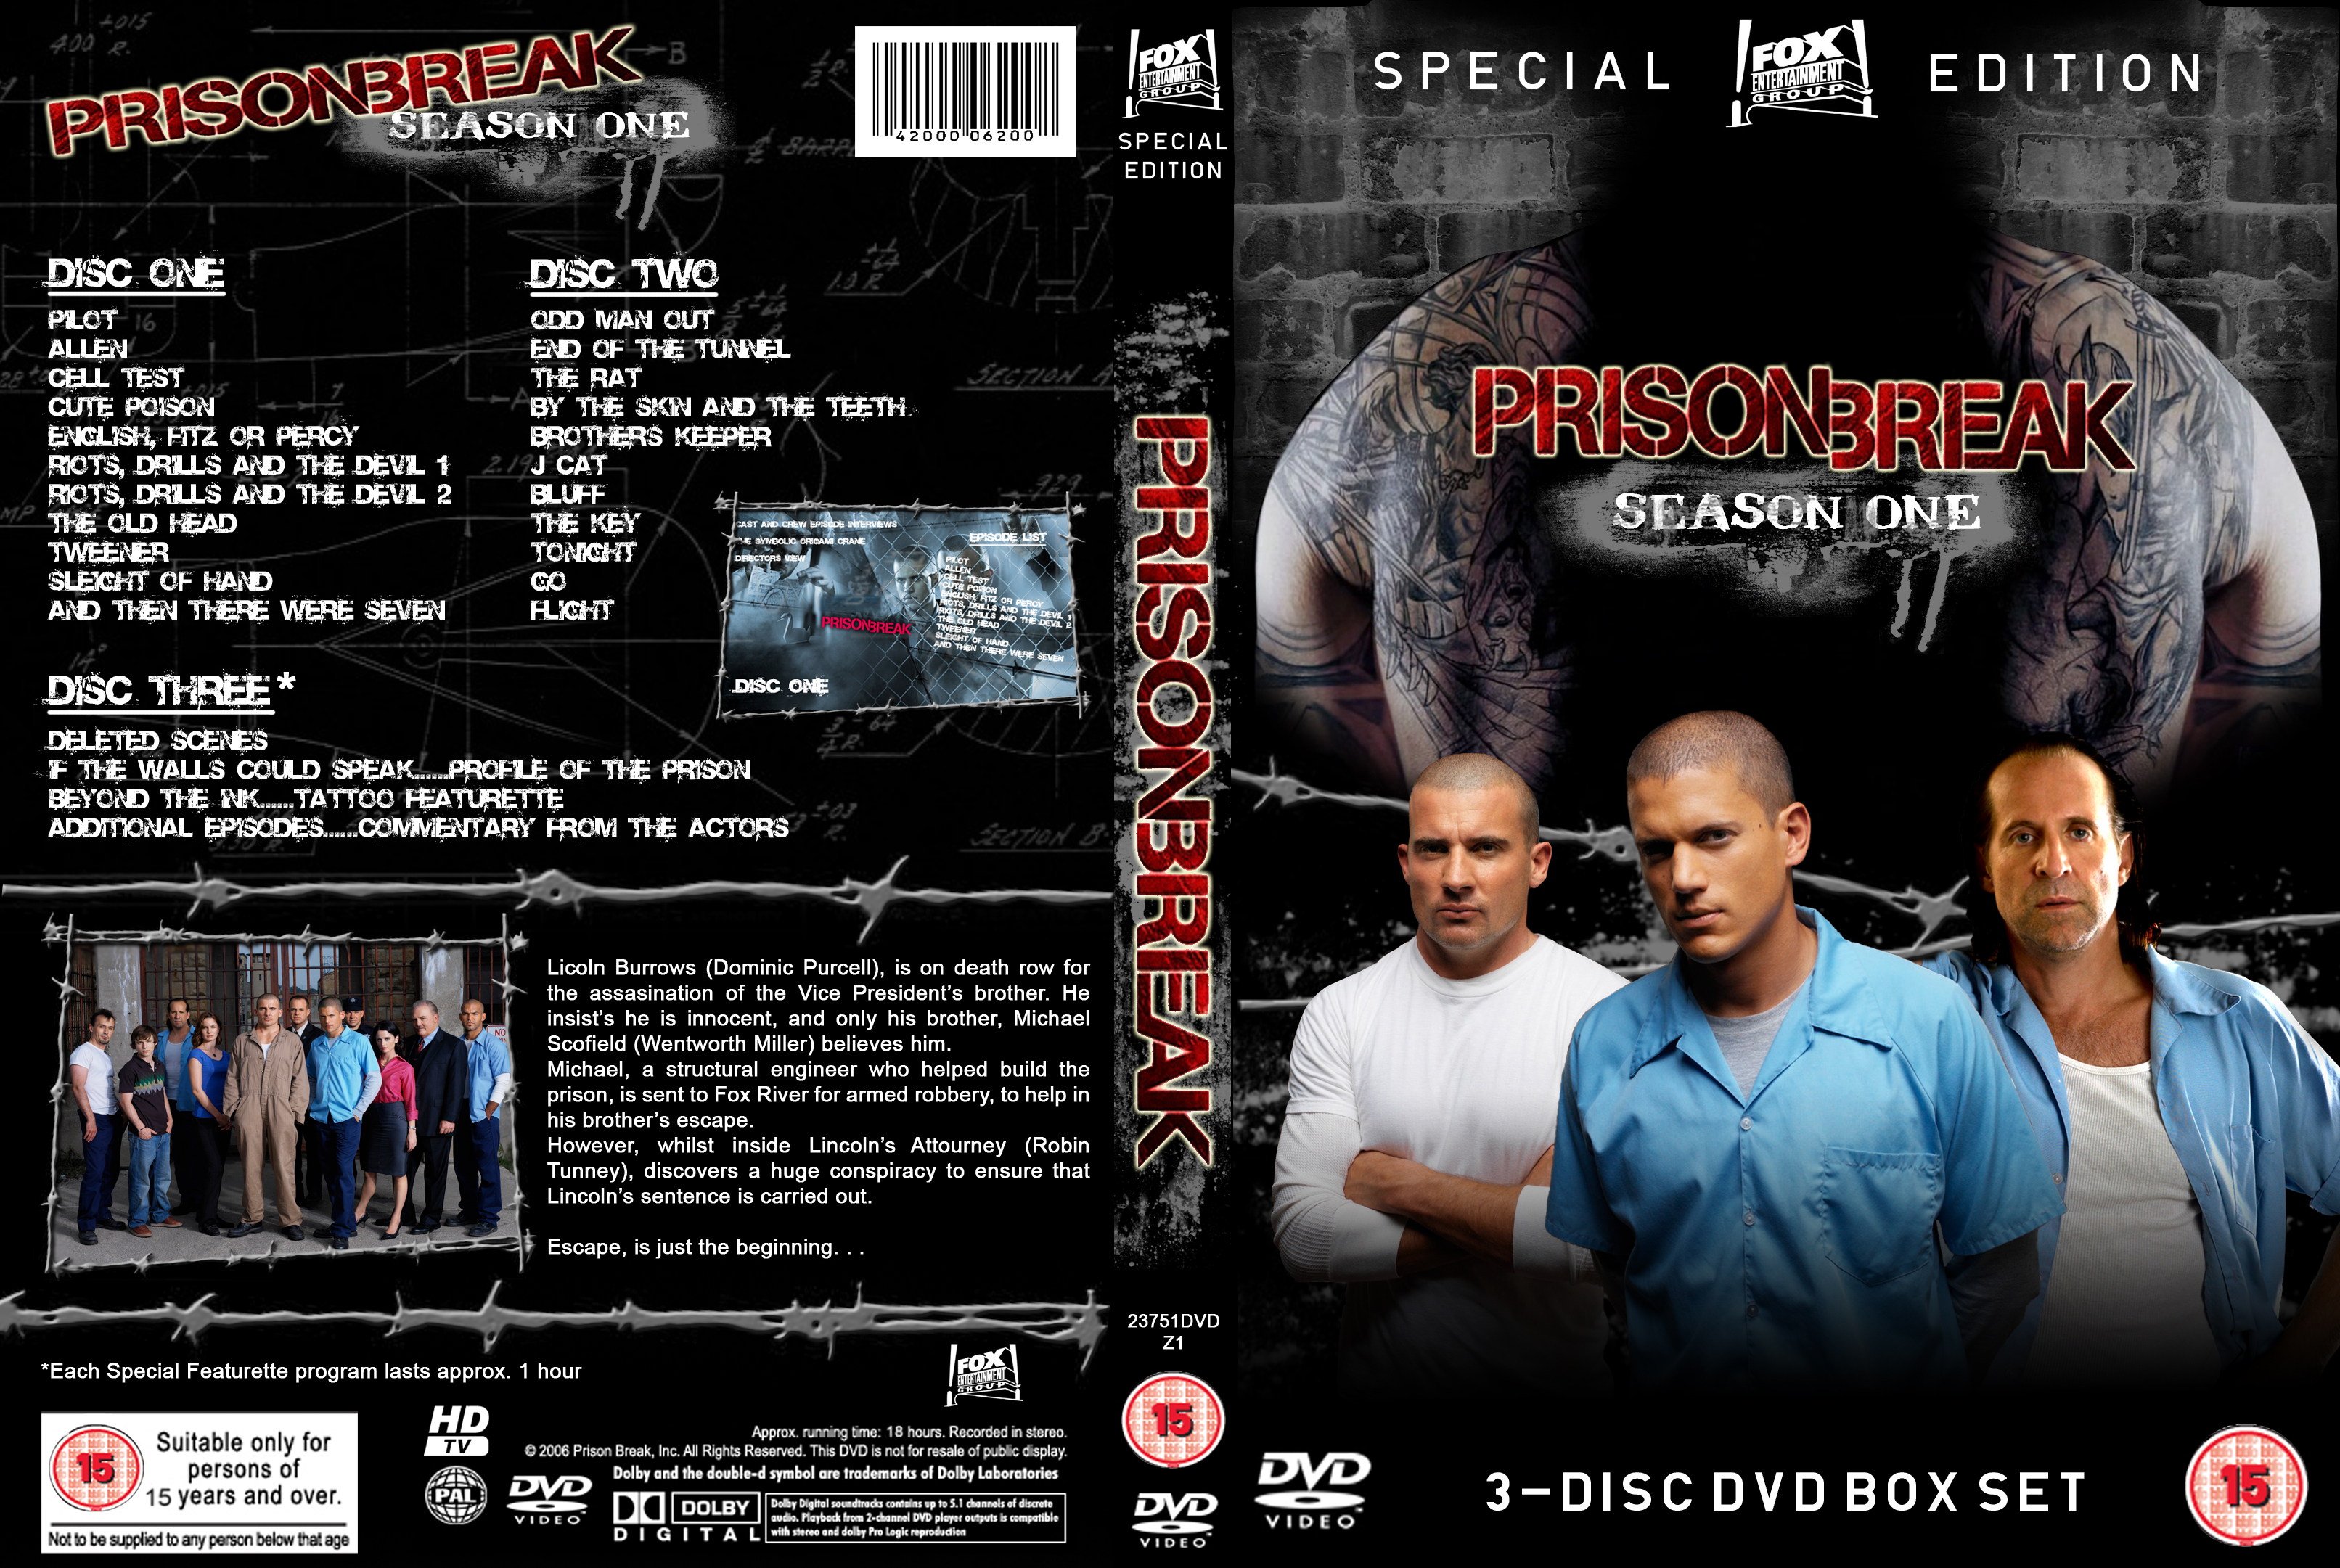 Prison Break Dvd Cover By Adampalmer On Deviantart